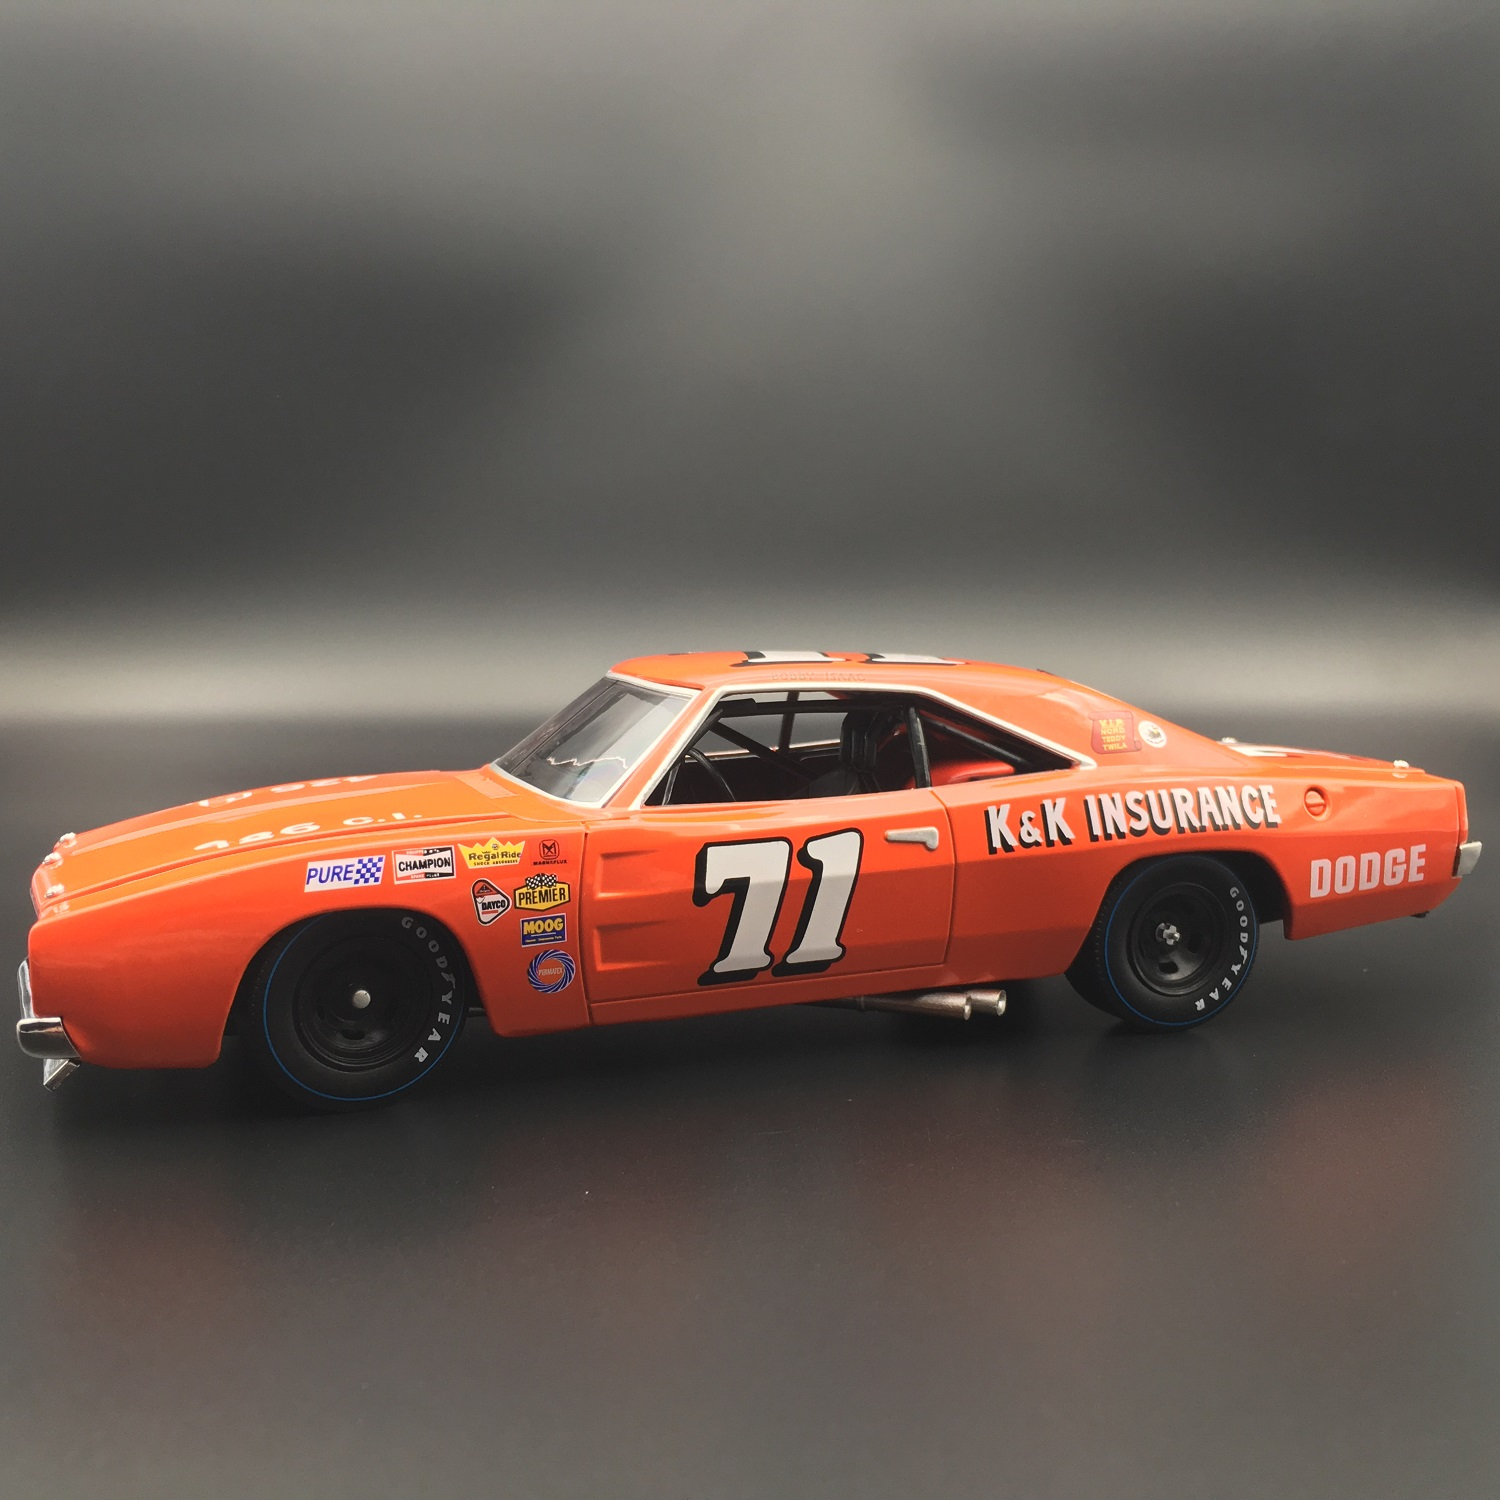 Bobby Isaac 1969 Dodge Charger 500 1:24 University Of Racing Diecast